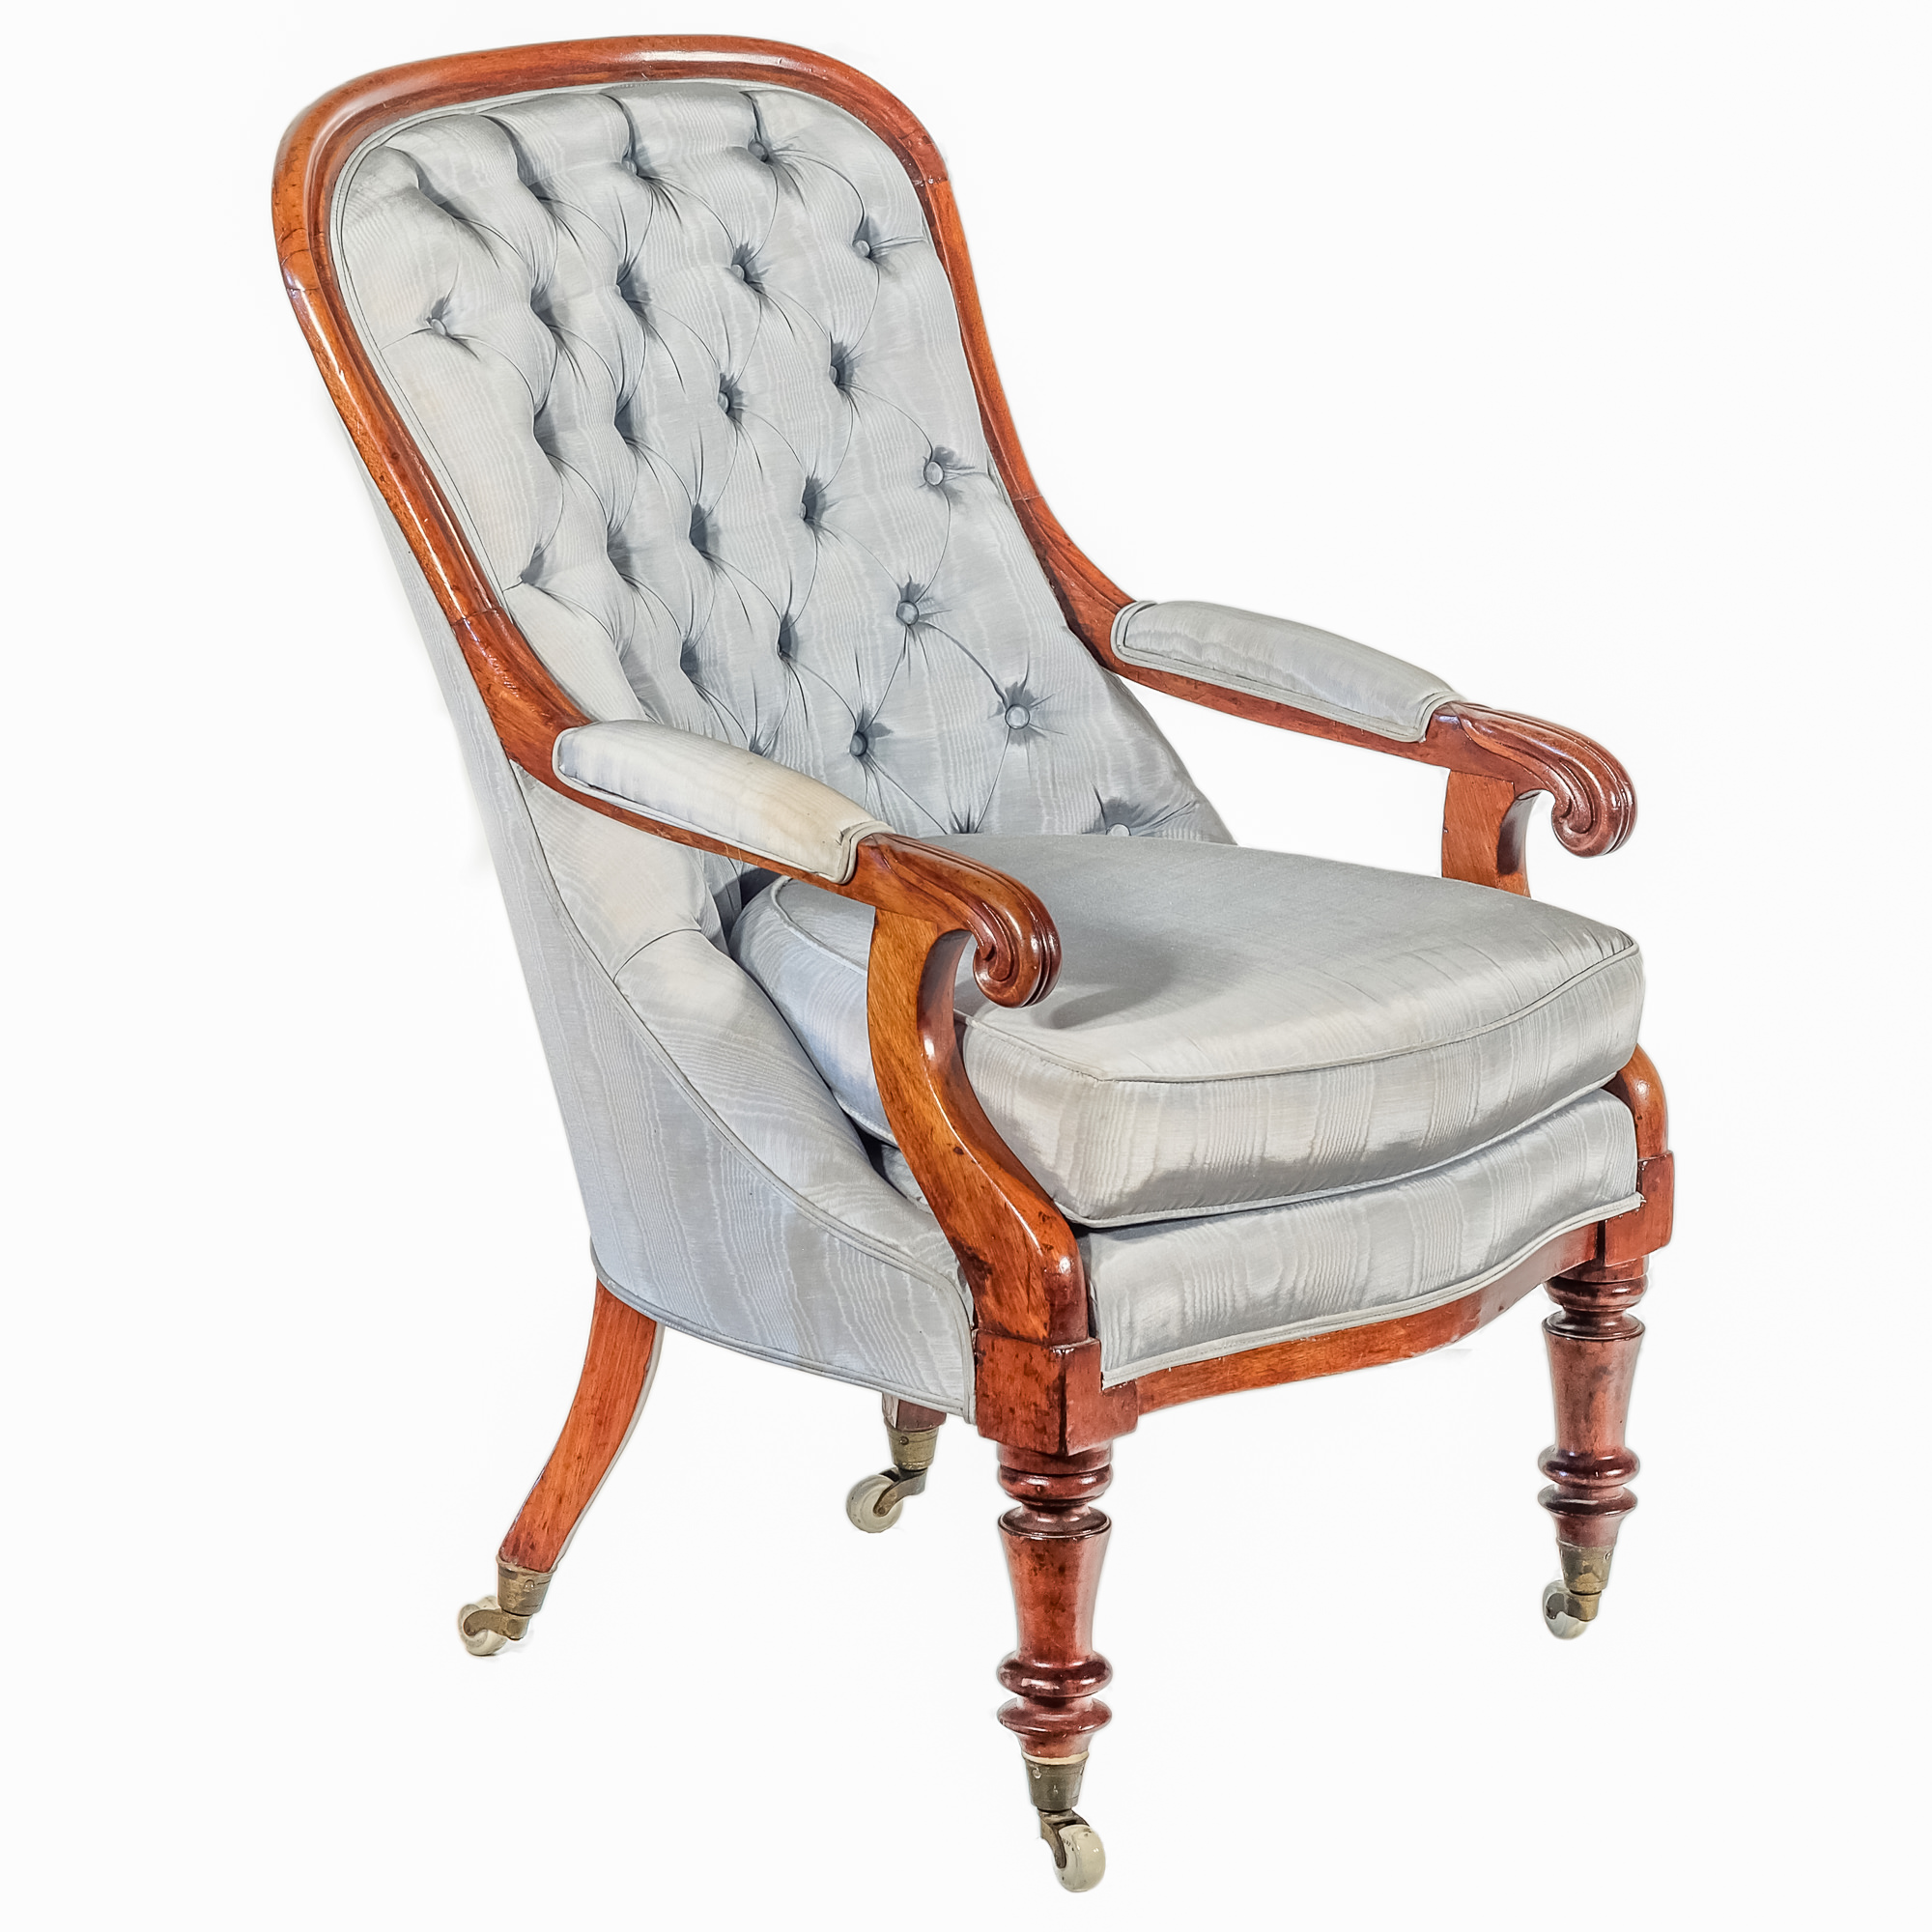 'Victorian Mahogany Armchair with Diamond Buttoned Upholstery in Pale Blue Circa 1870'